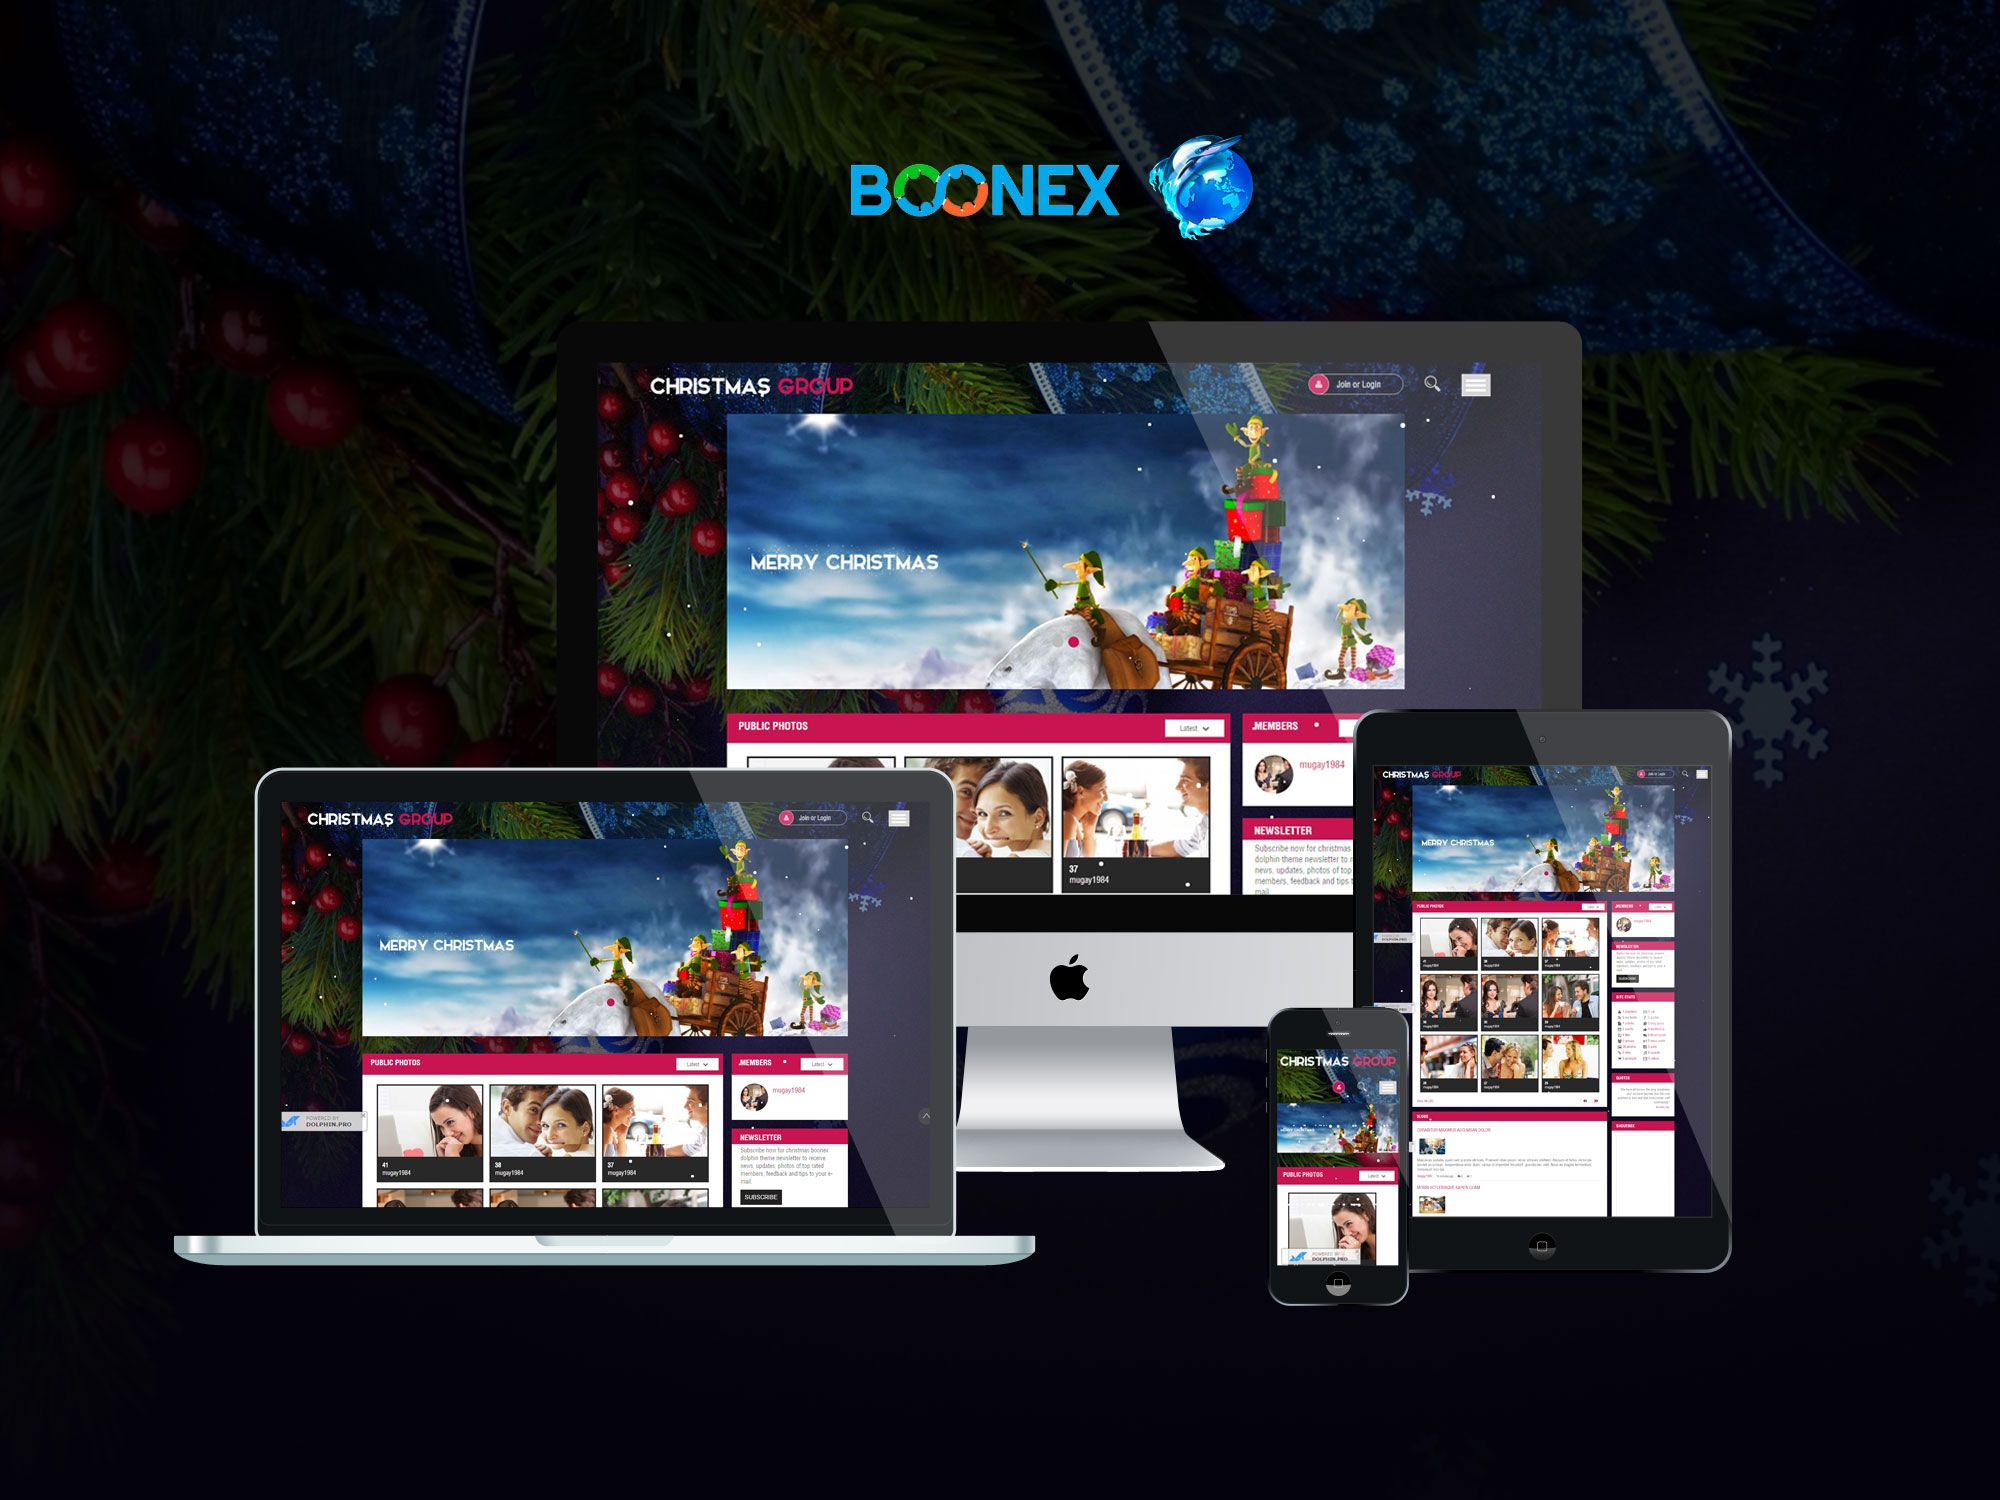 Christmas group - Download Premium boonex dolphin template, Download ...